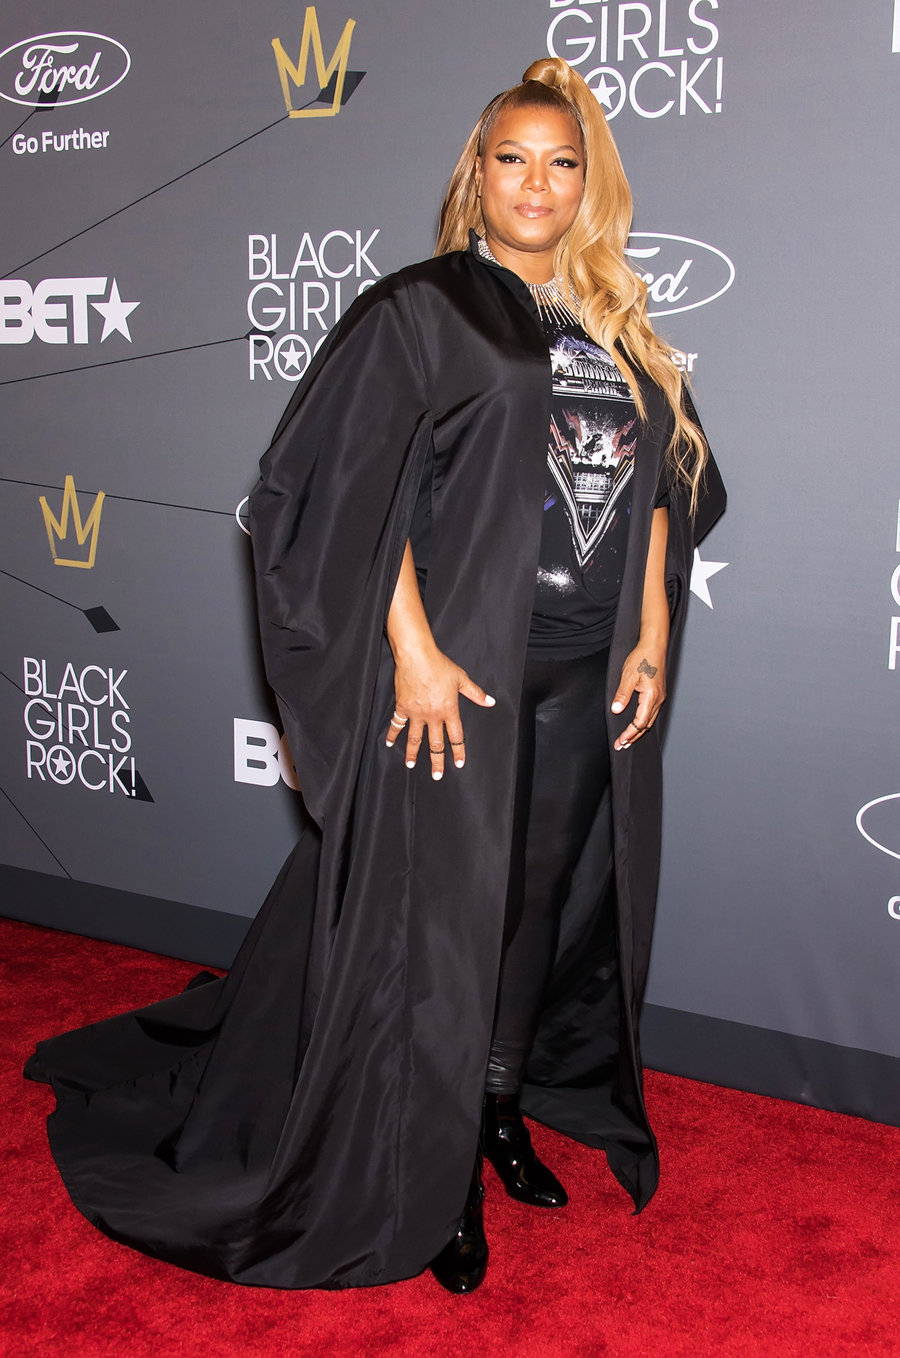 queen-latifah-black-girls-rock-red-carpet-2018-billboard-1240